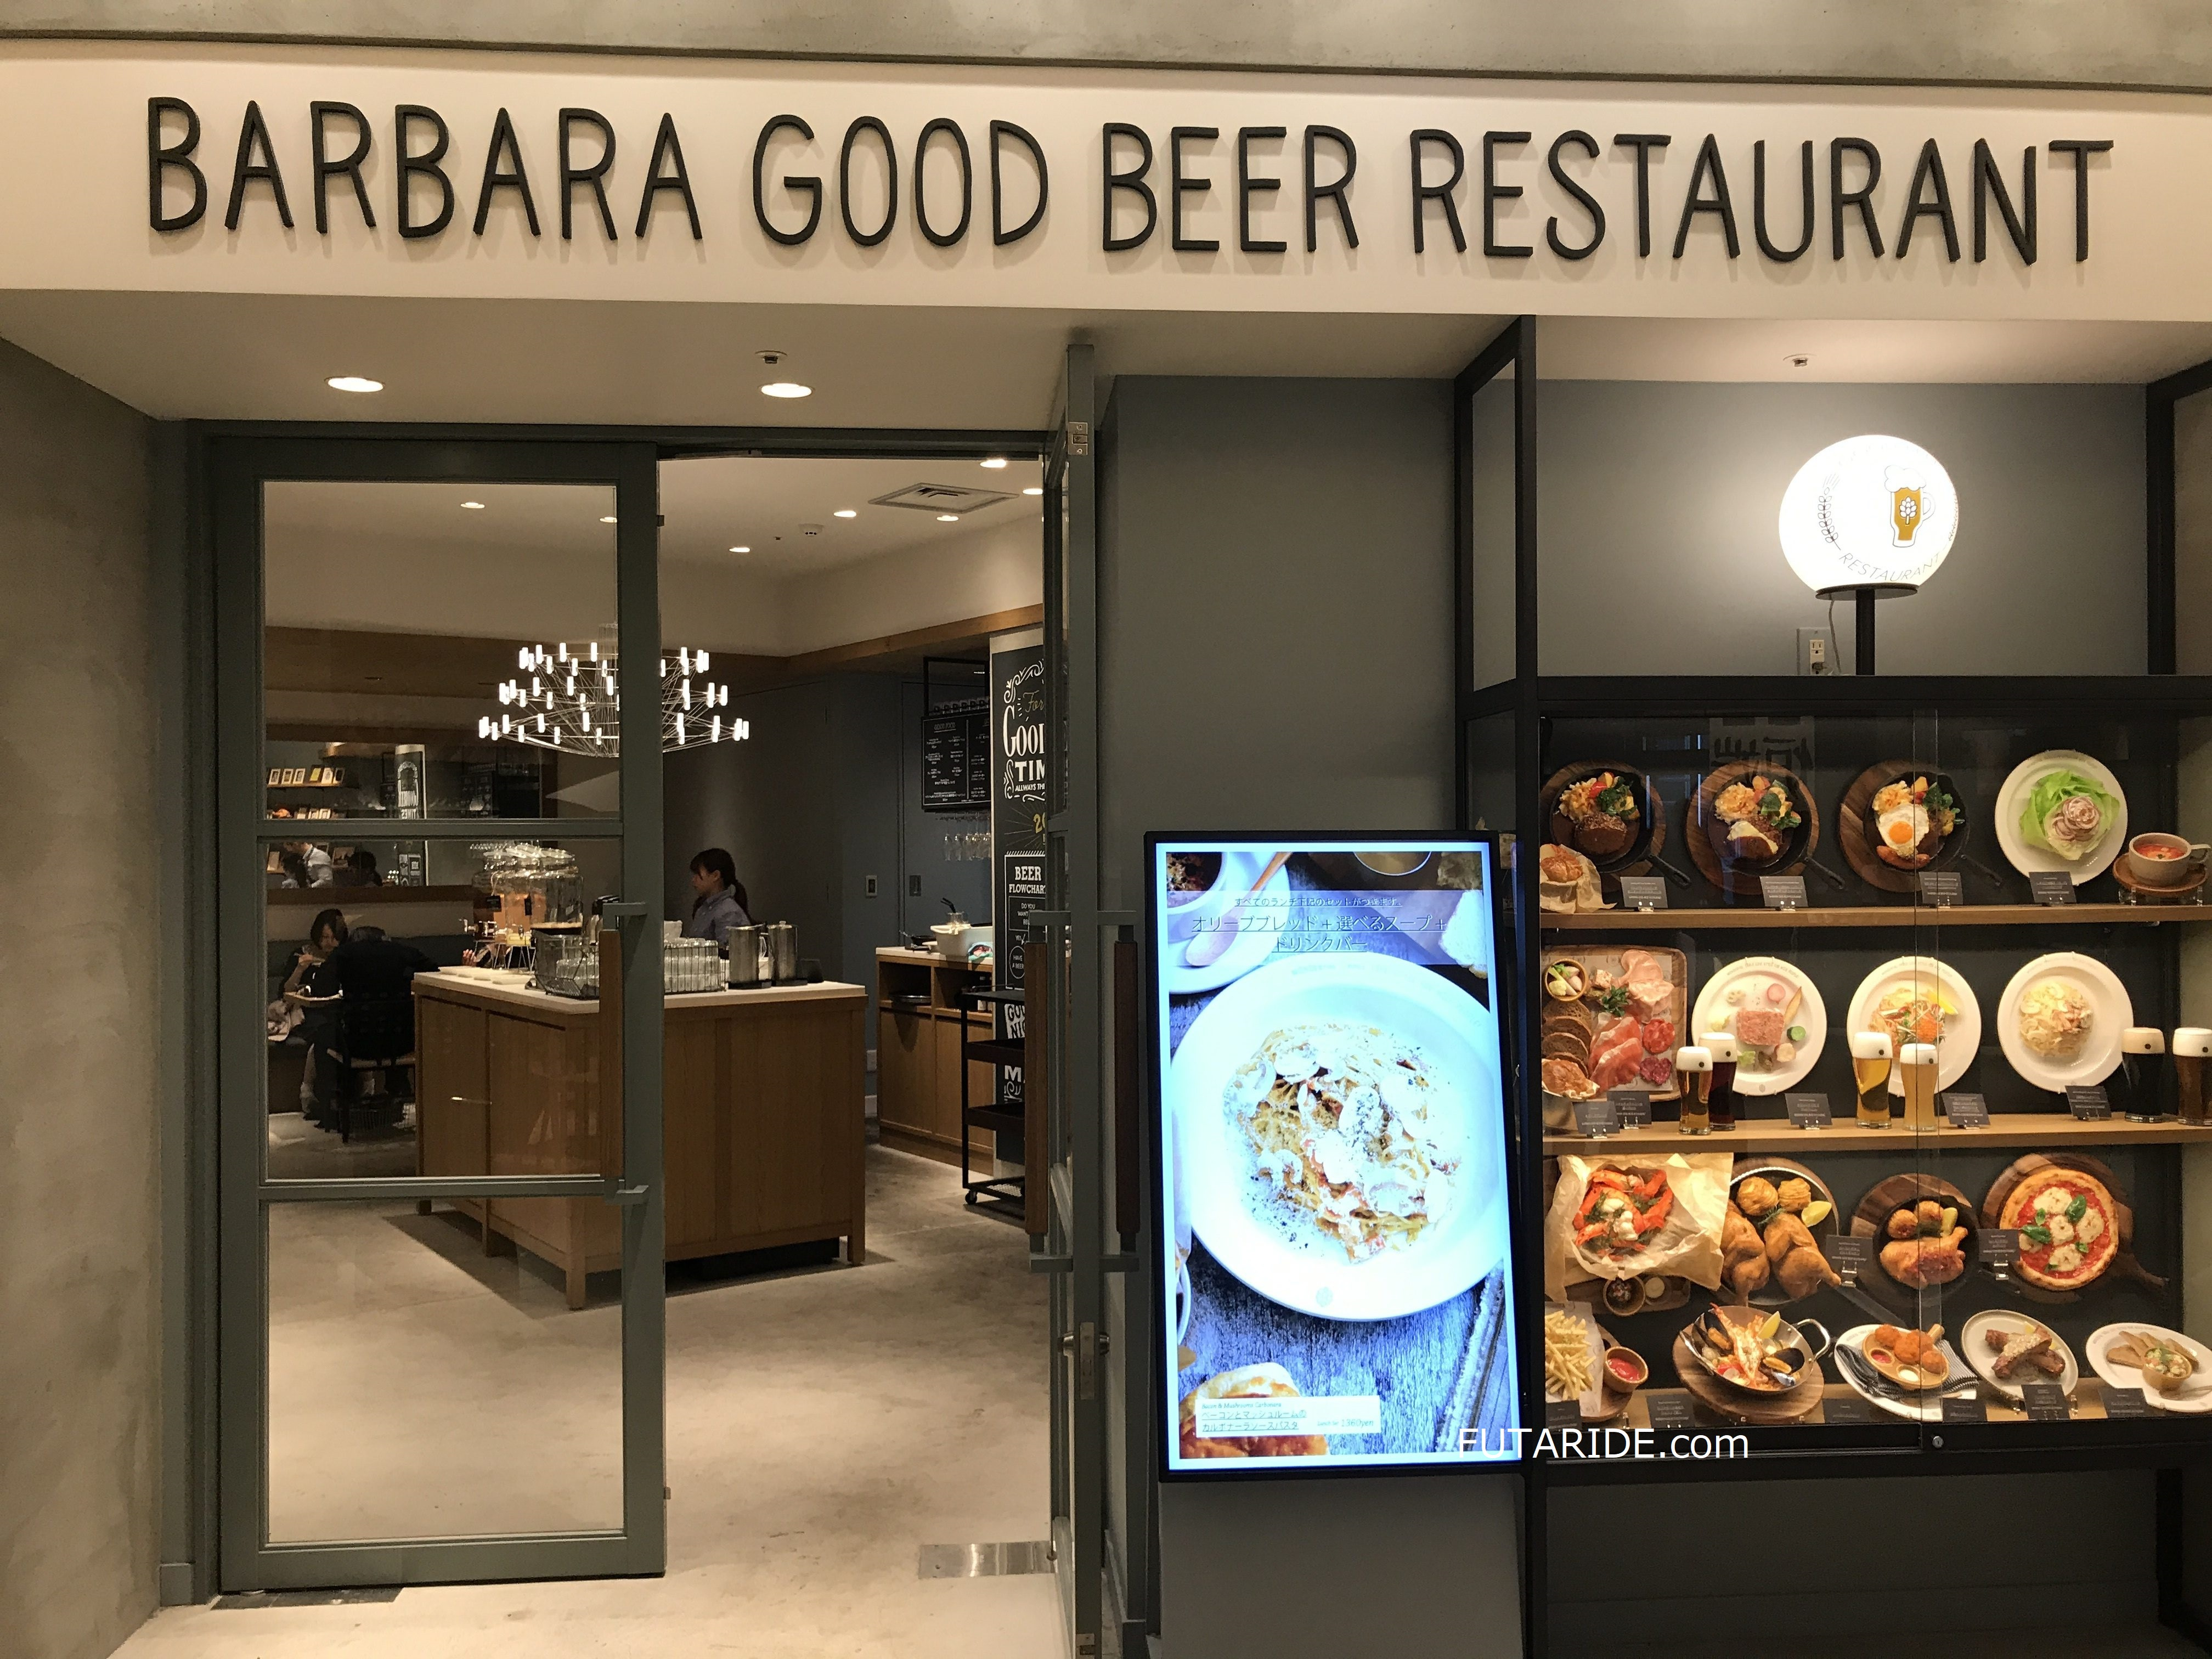 BARBARA GOODBEER RESTAURANT